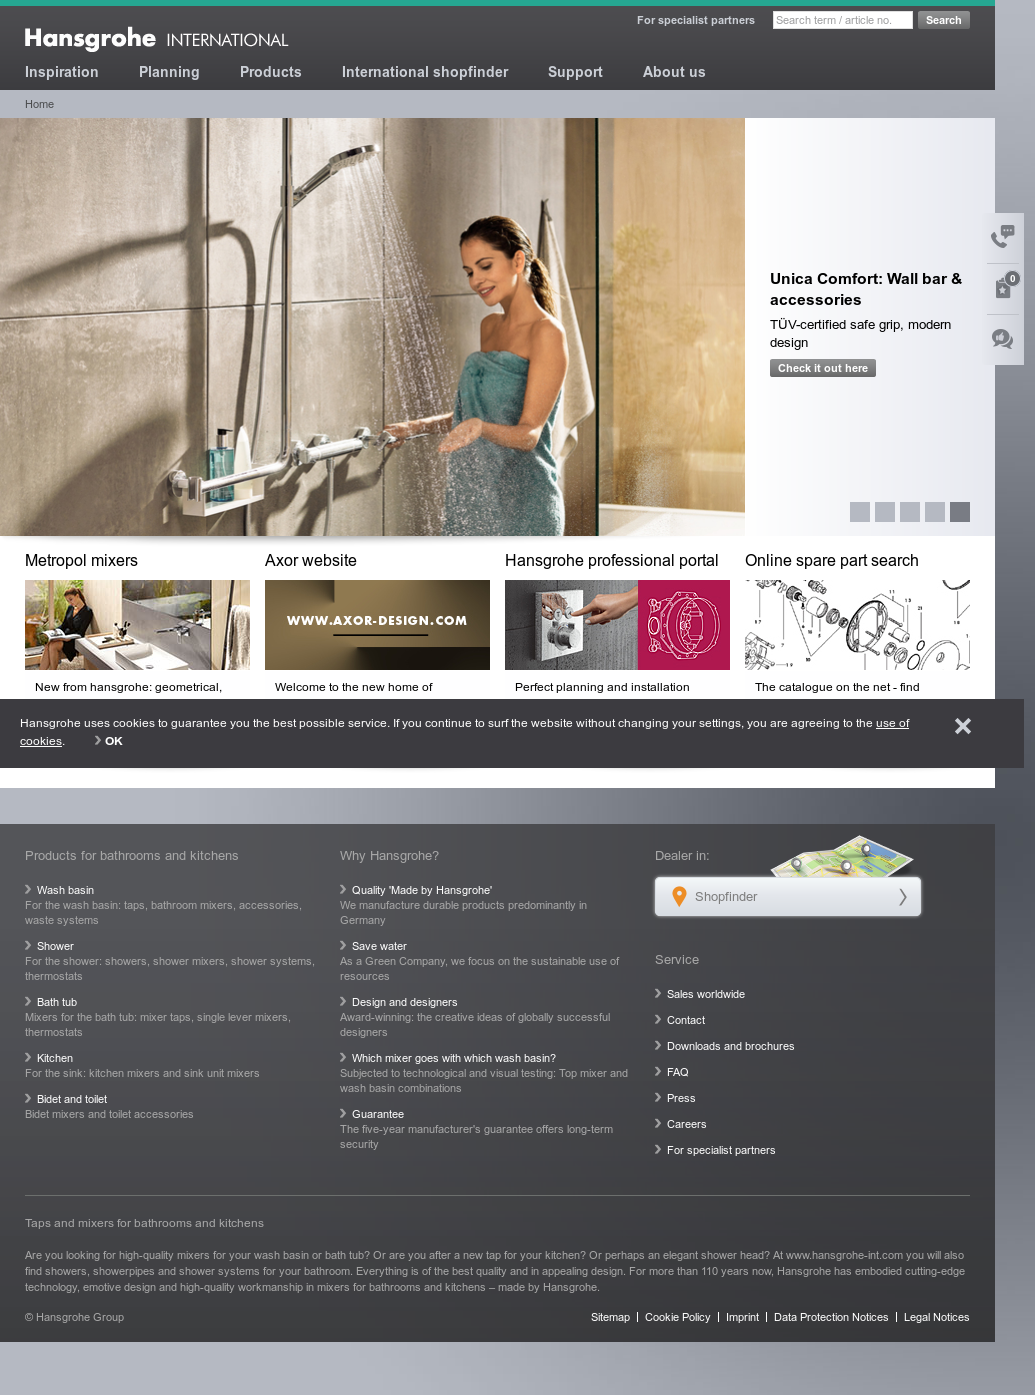 Hansgrohe Group Competitors, Revenue and Employees - Owler Company ...